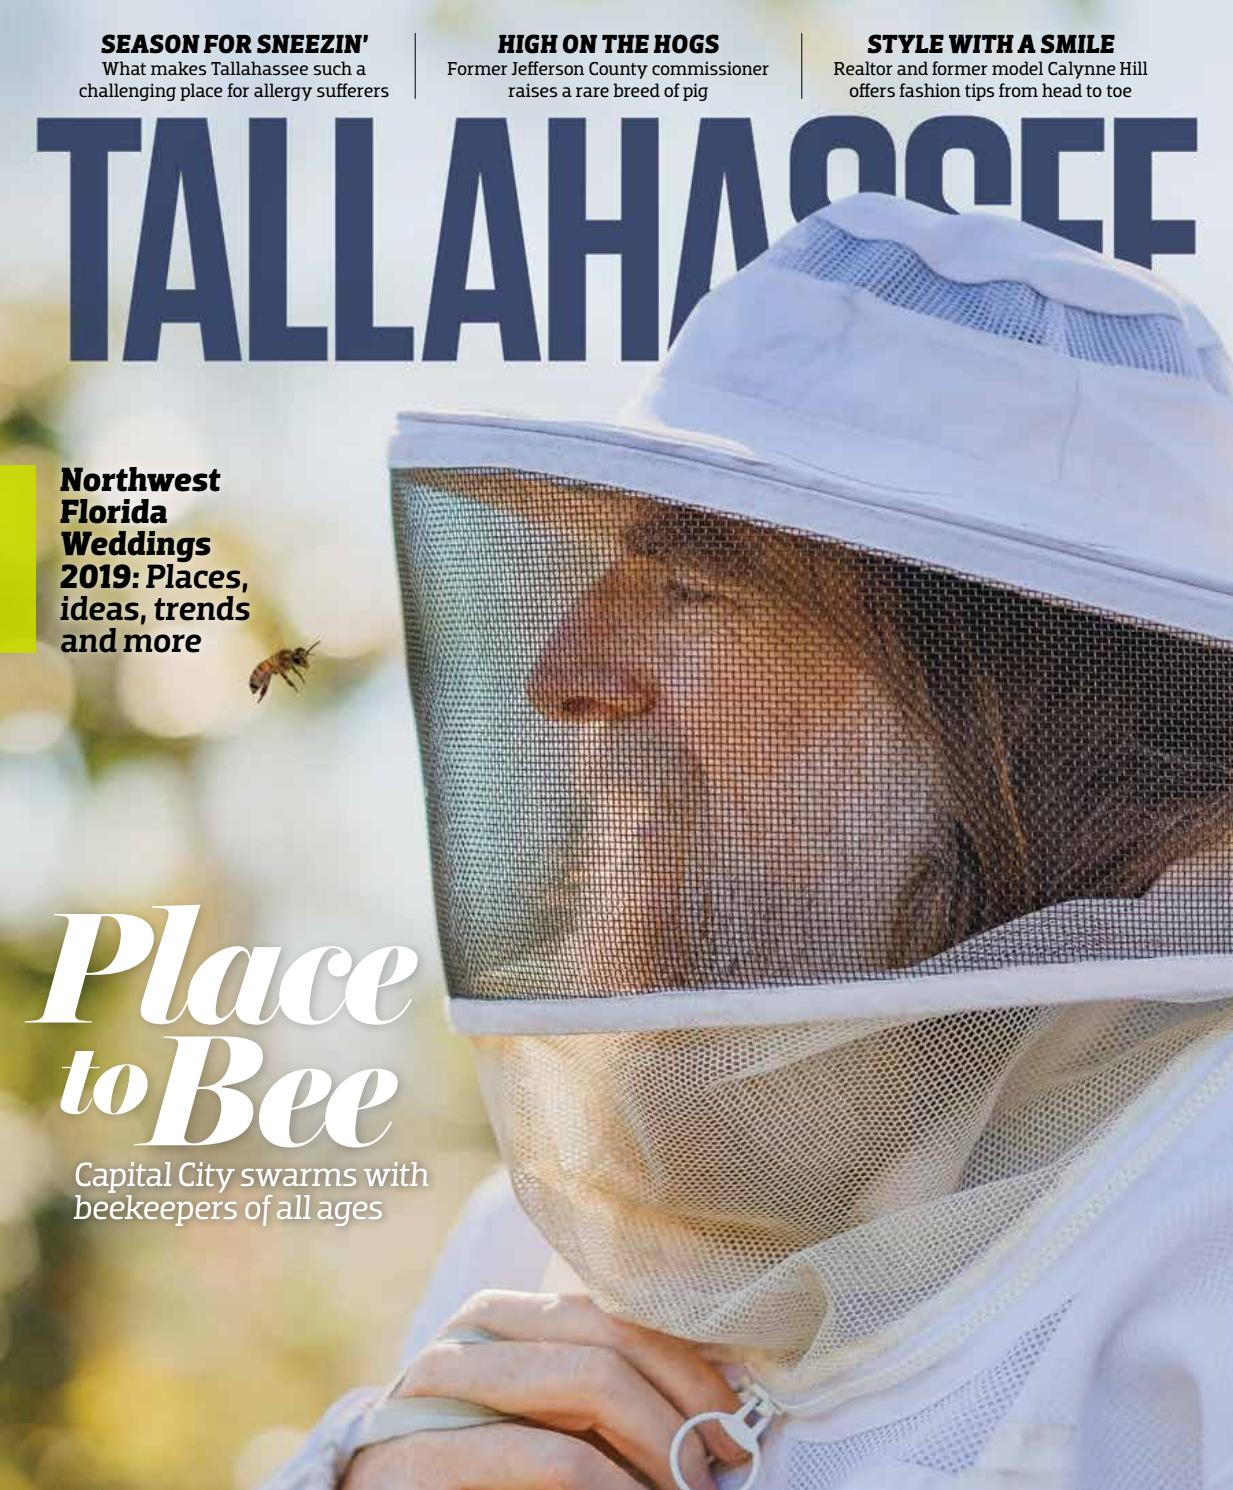 Tallahassee Magazine March - April 2019 by Rowland